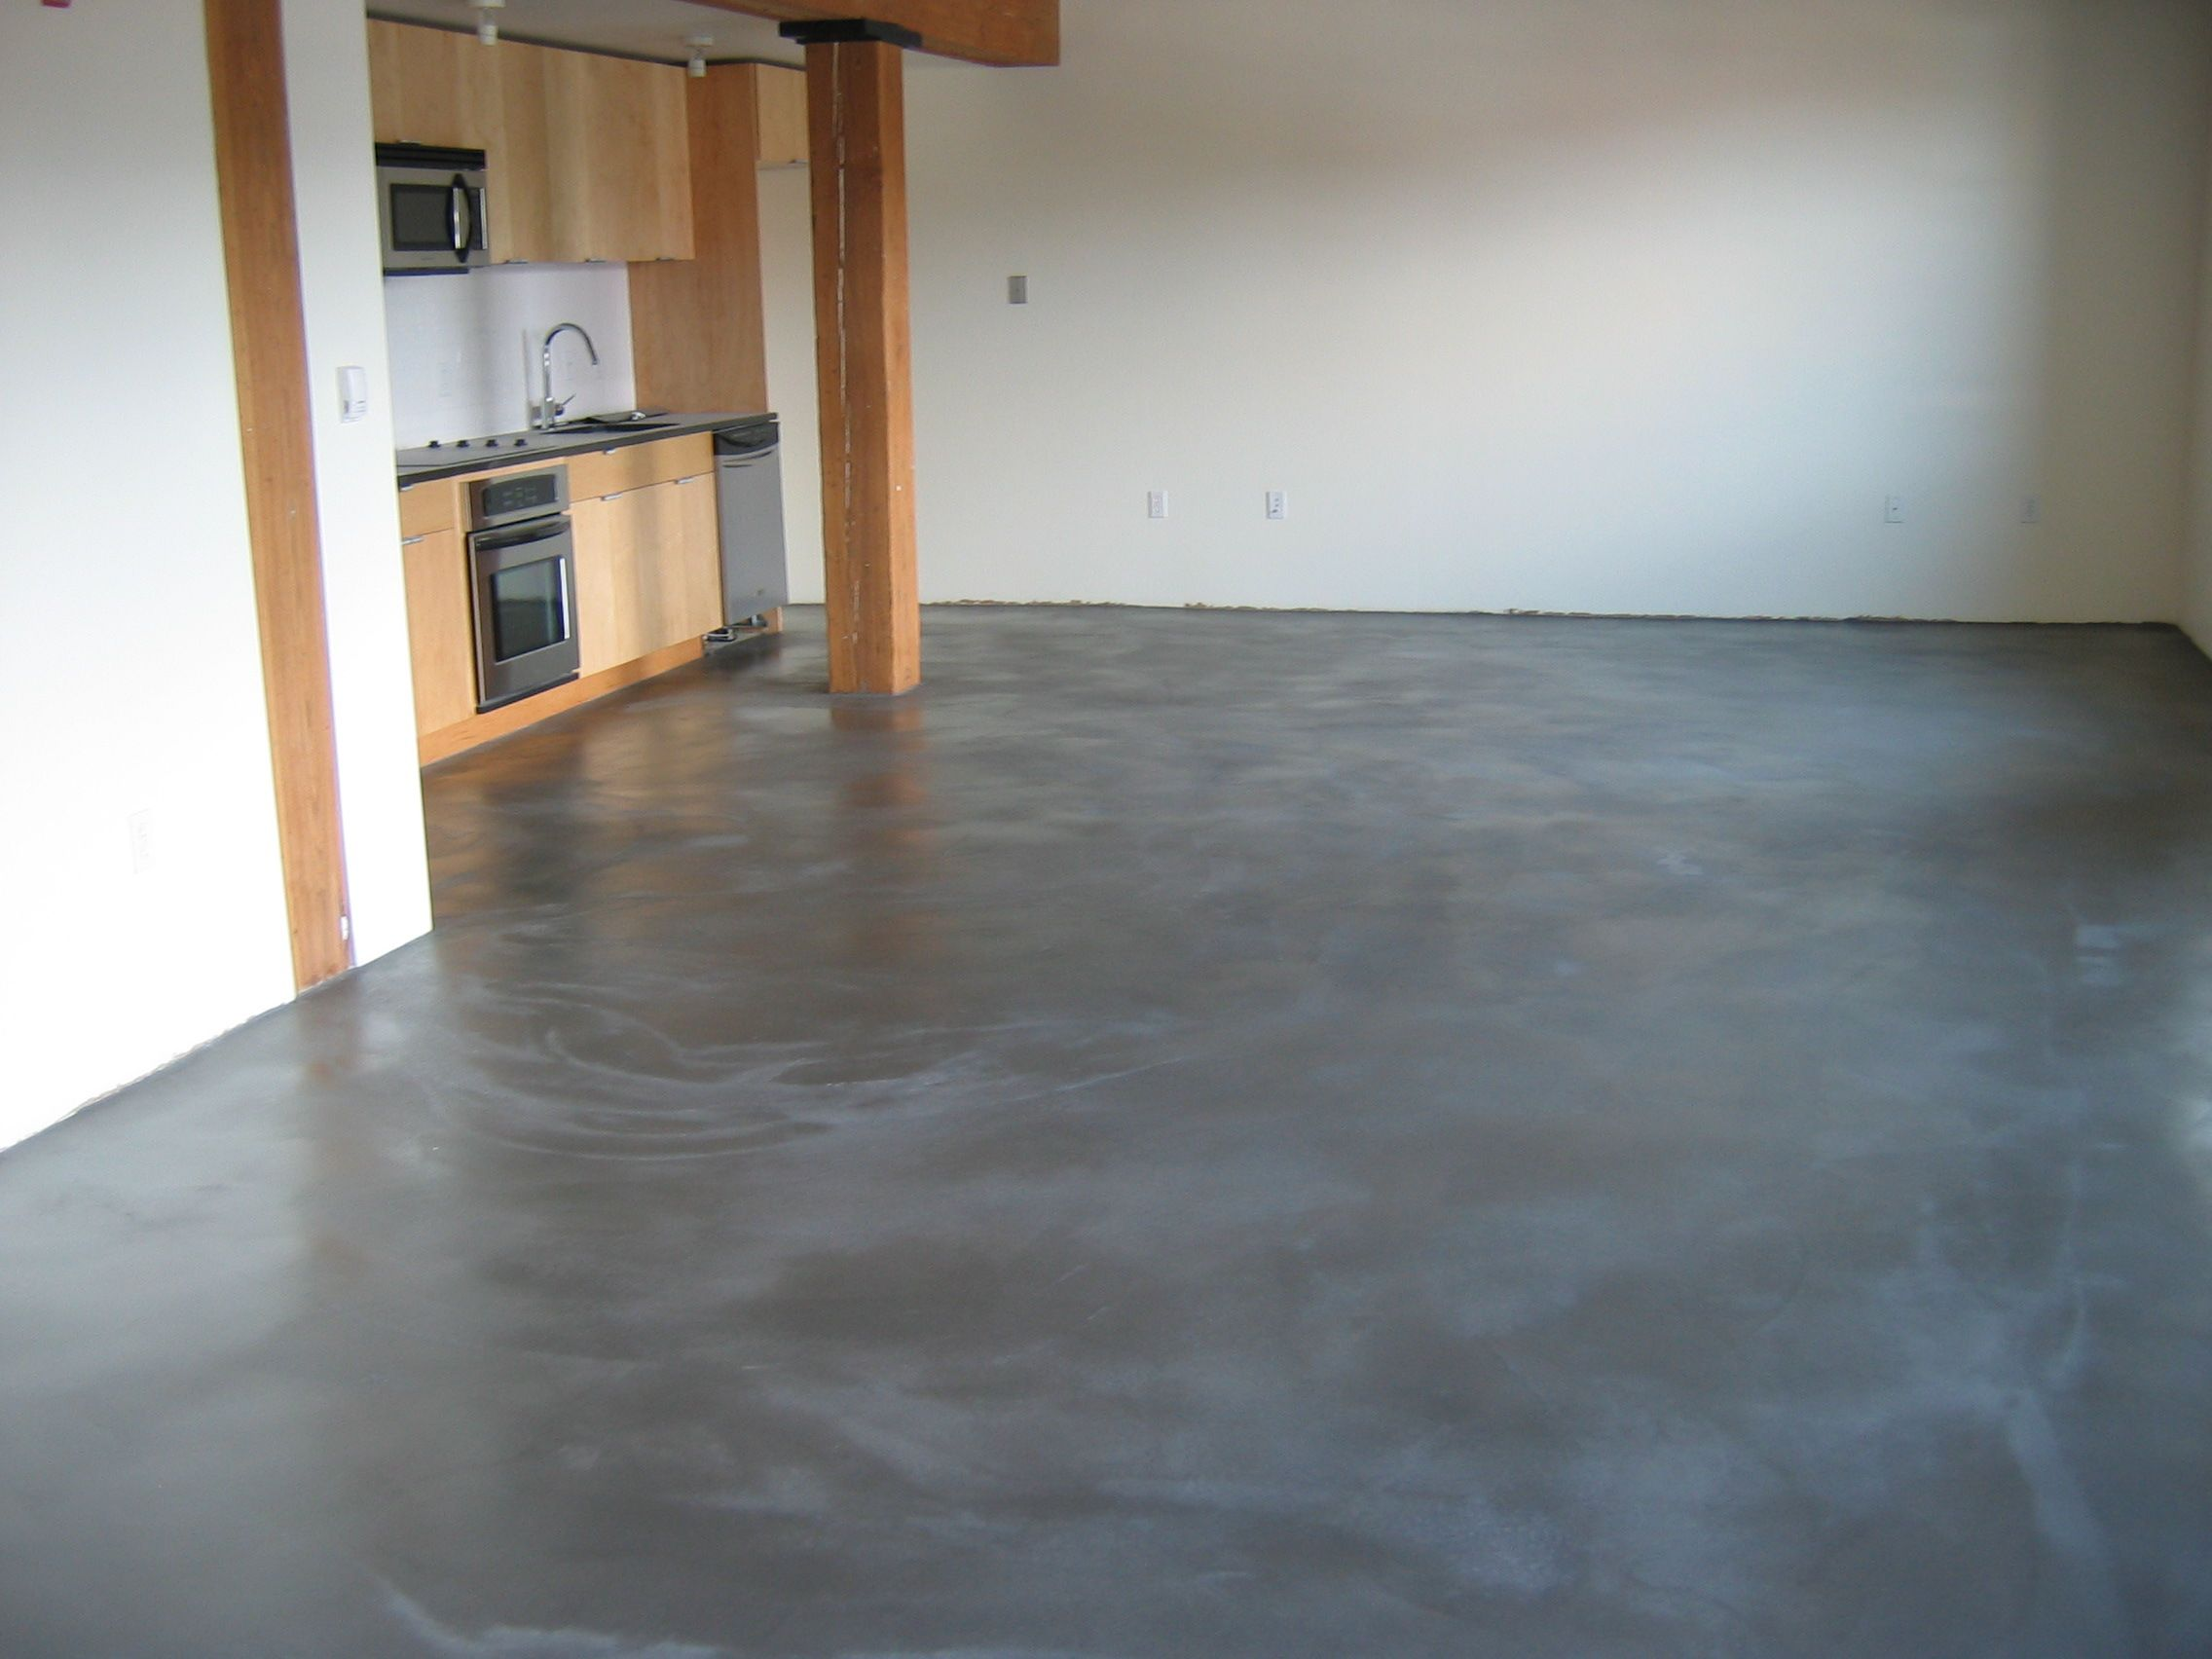 Poured concrete floors concrete polishing concrete floor experts save the day in boston ma